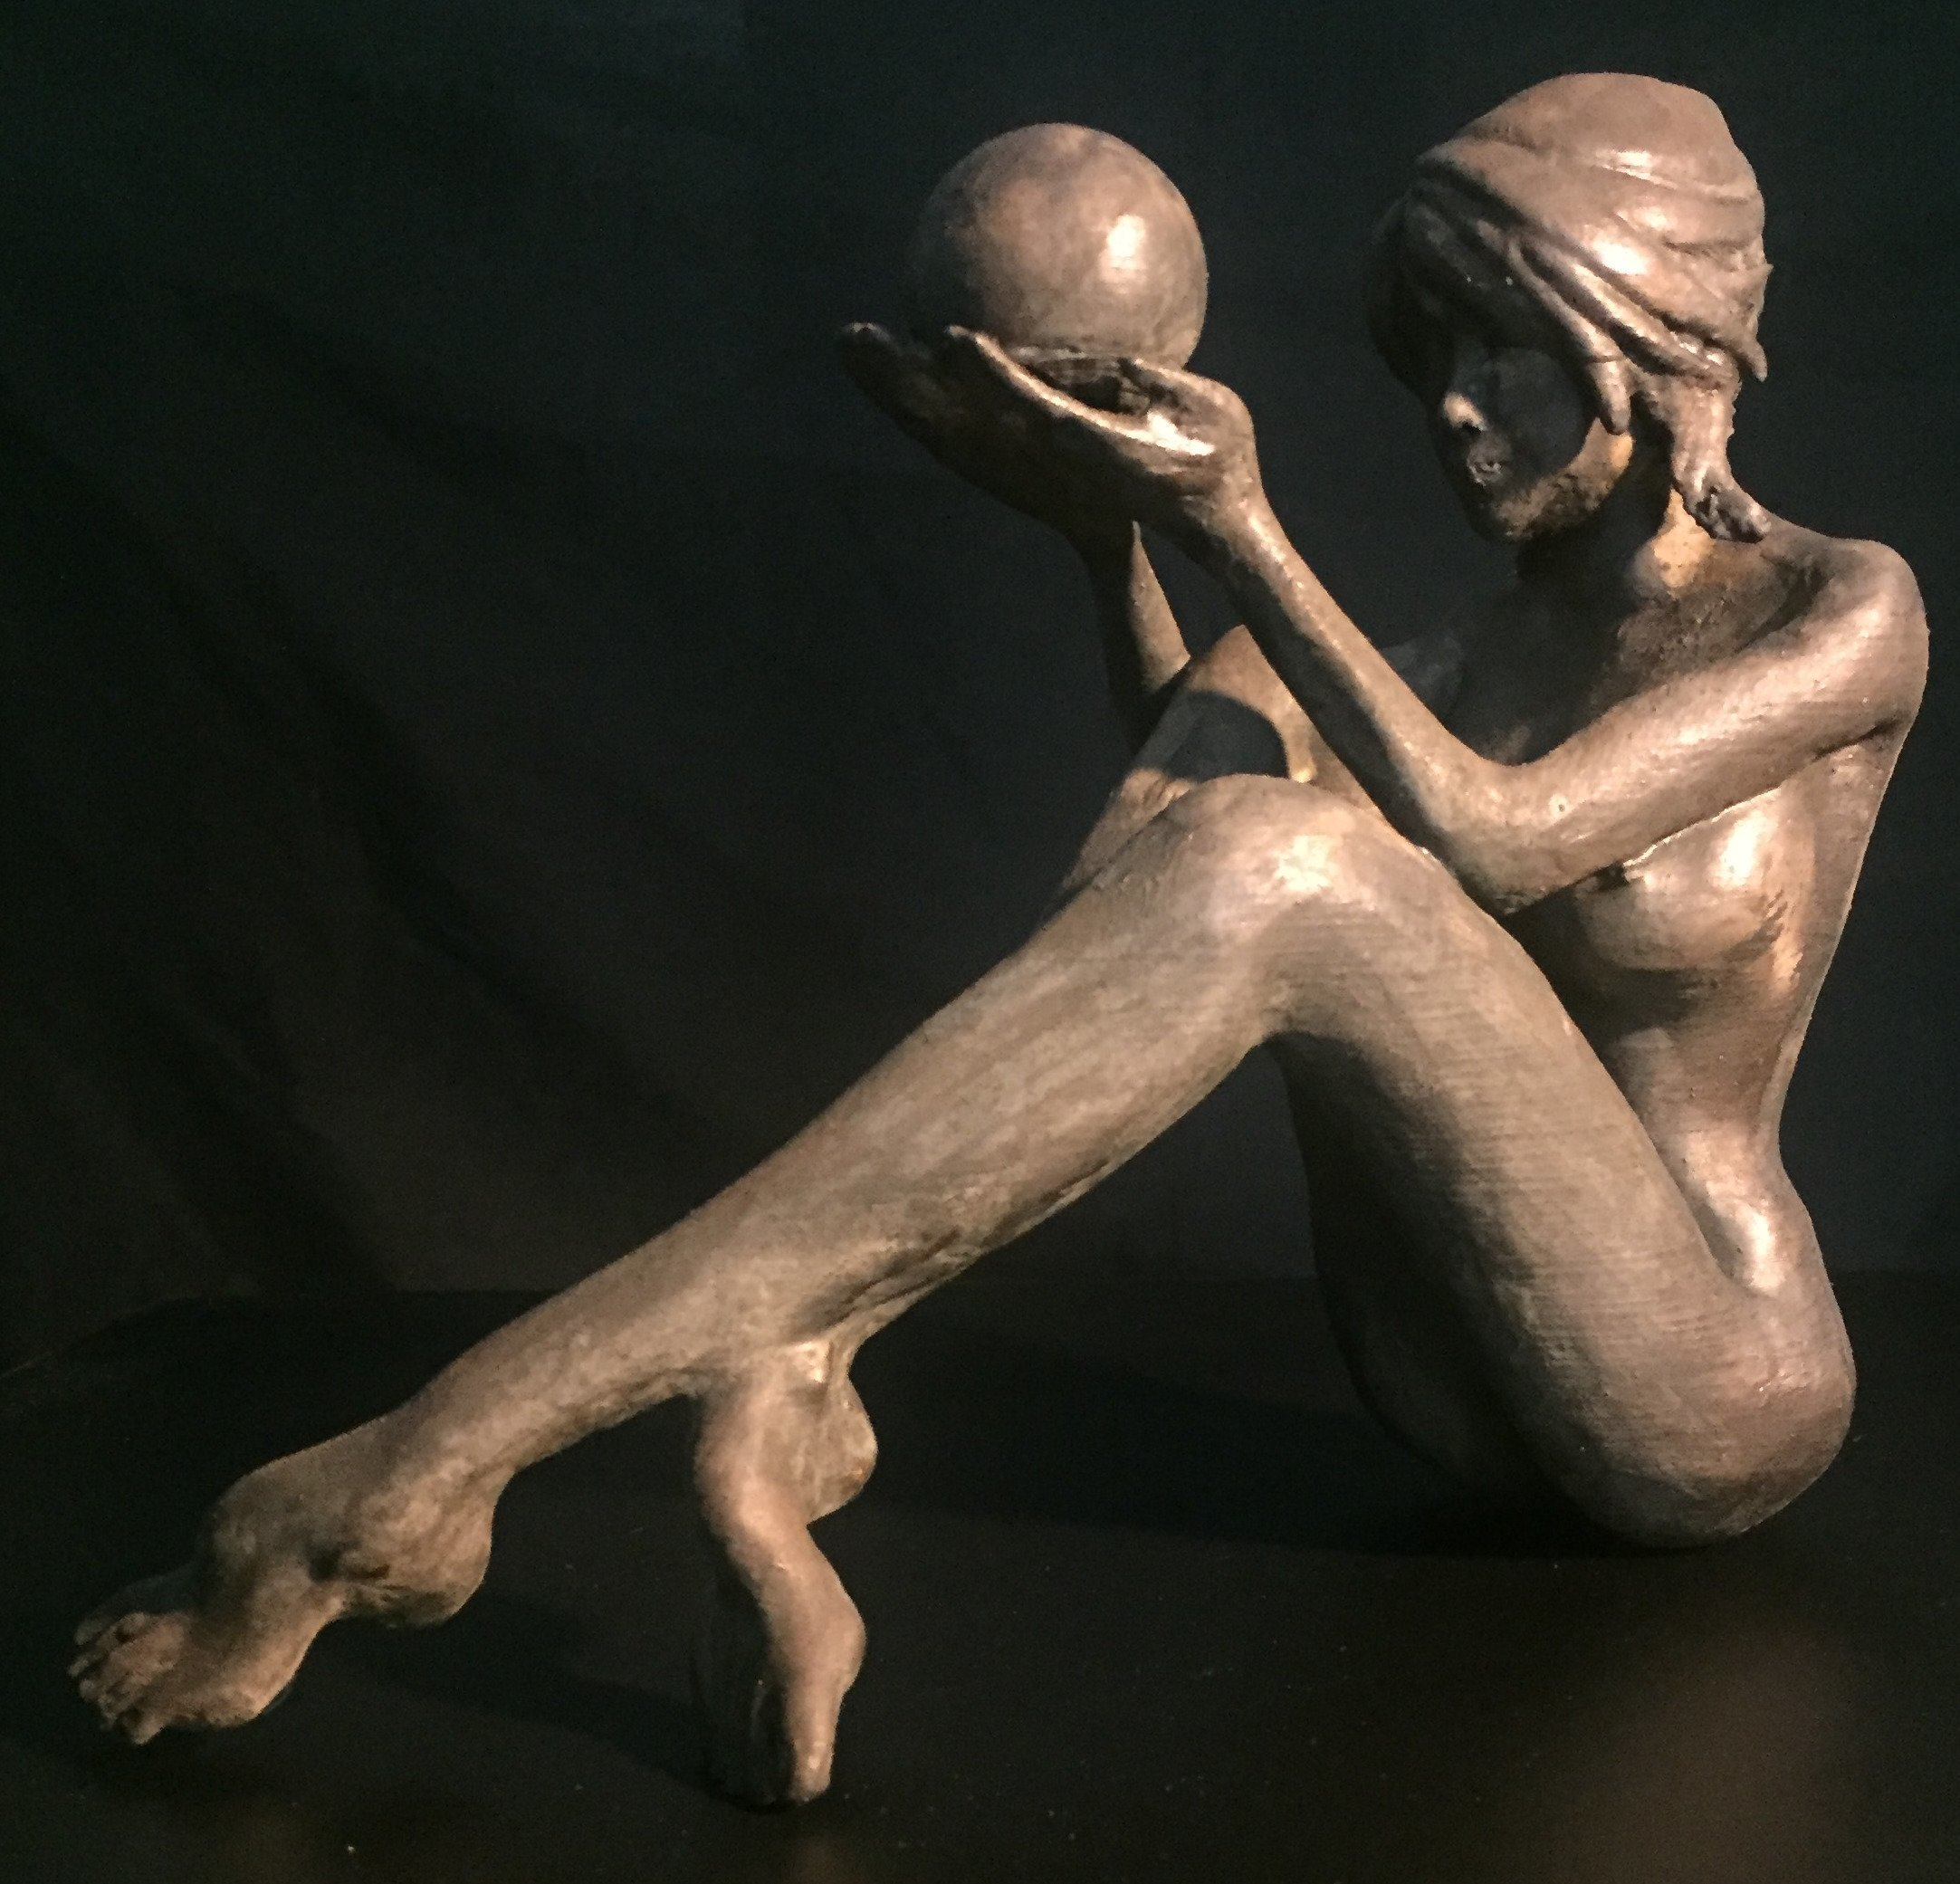 James Johnson: 'INTUITION 2nd edition', 2019 Bronze Sculpture, Nudes. Free shipping within the continental USA.  Understanding the present and knowing the future happens everyday.  She was created using a cold cast method where bronze powder is incorporated into another media.  The patina is created using liver of sulfur.  Limited edition of 150 with an artistaEURtms mark, date, and ...